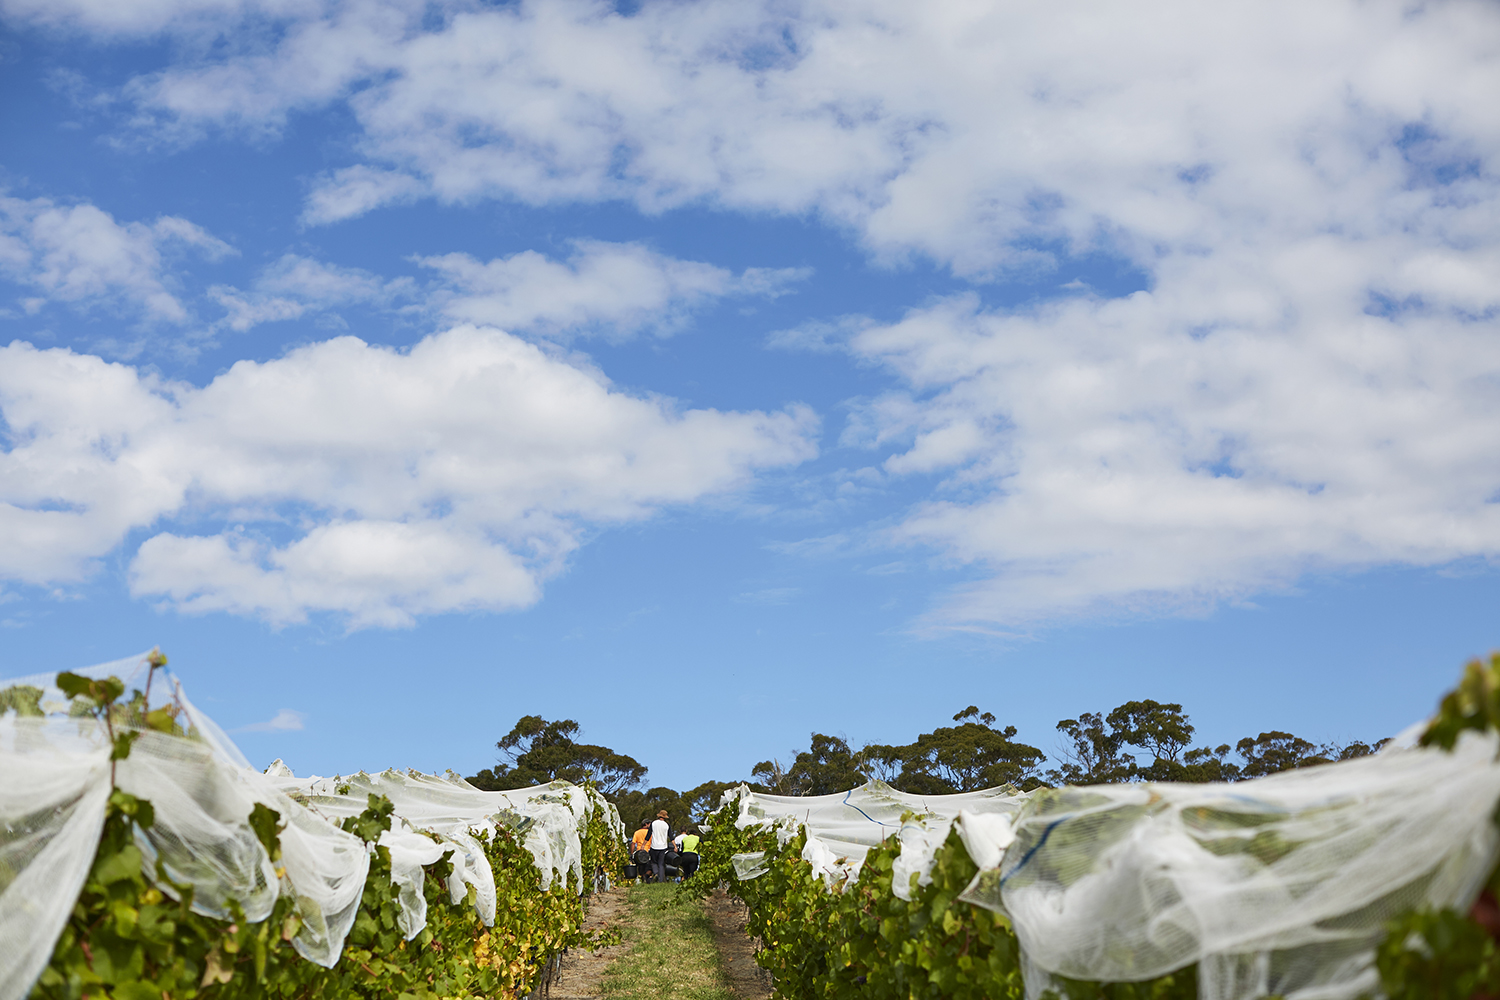 We enjoyed warm conditions through the harvest period